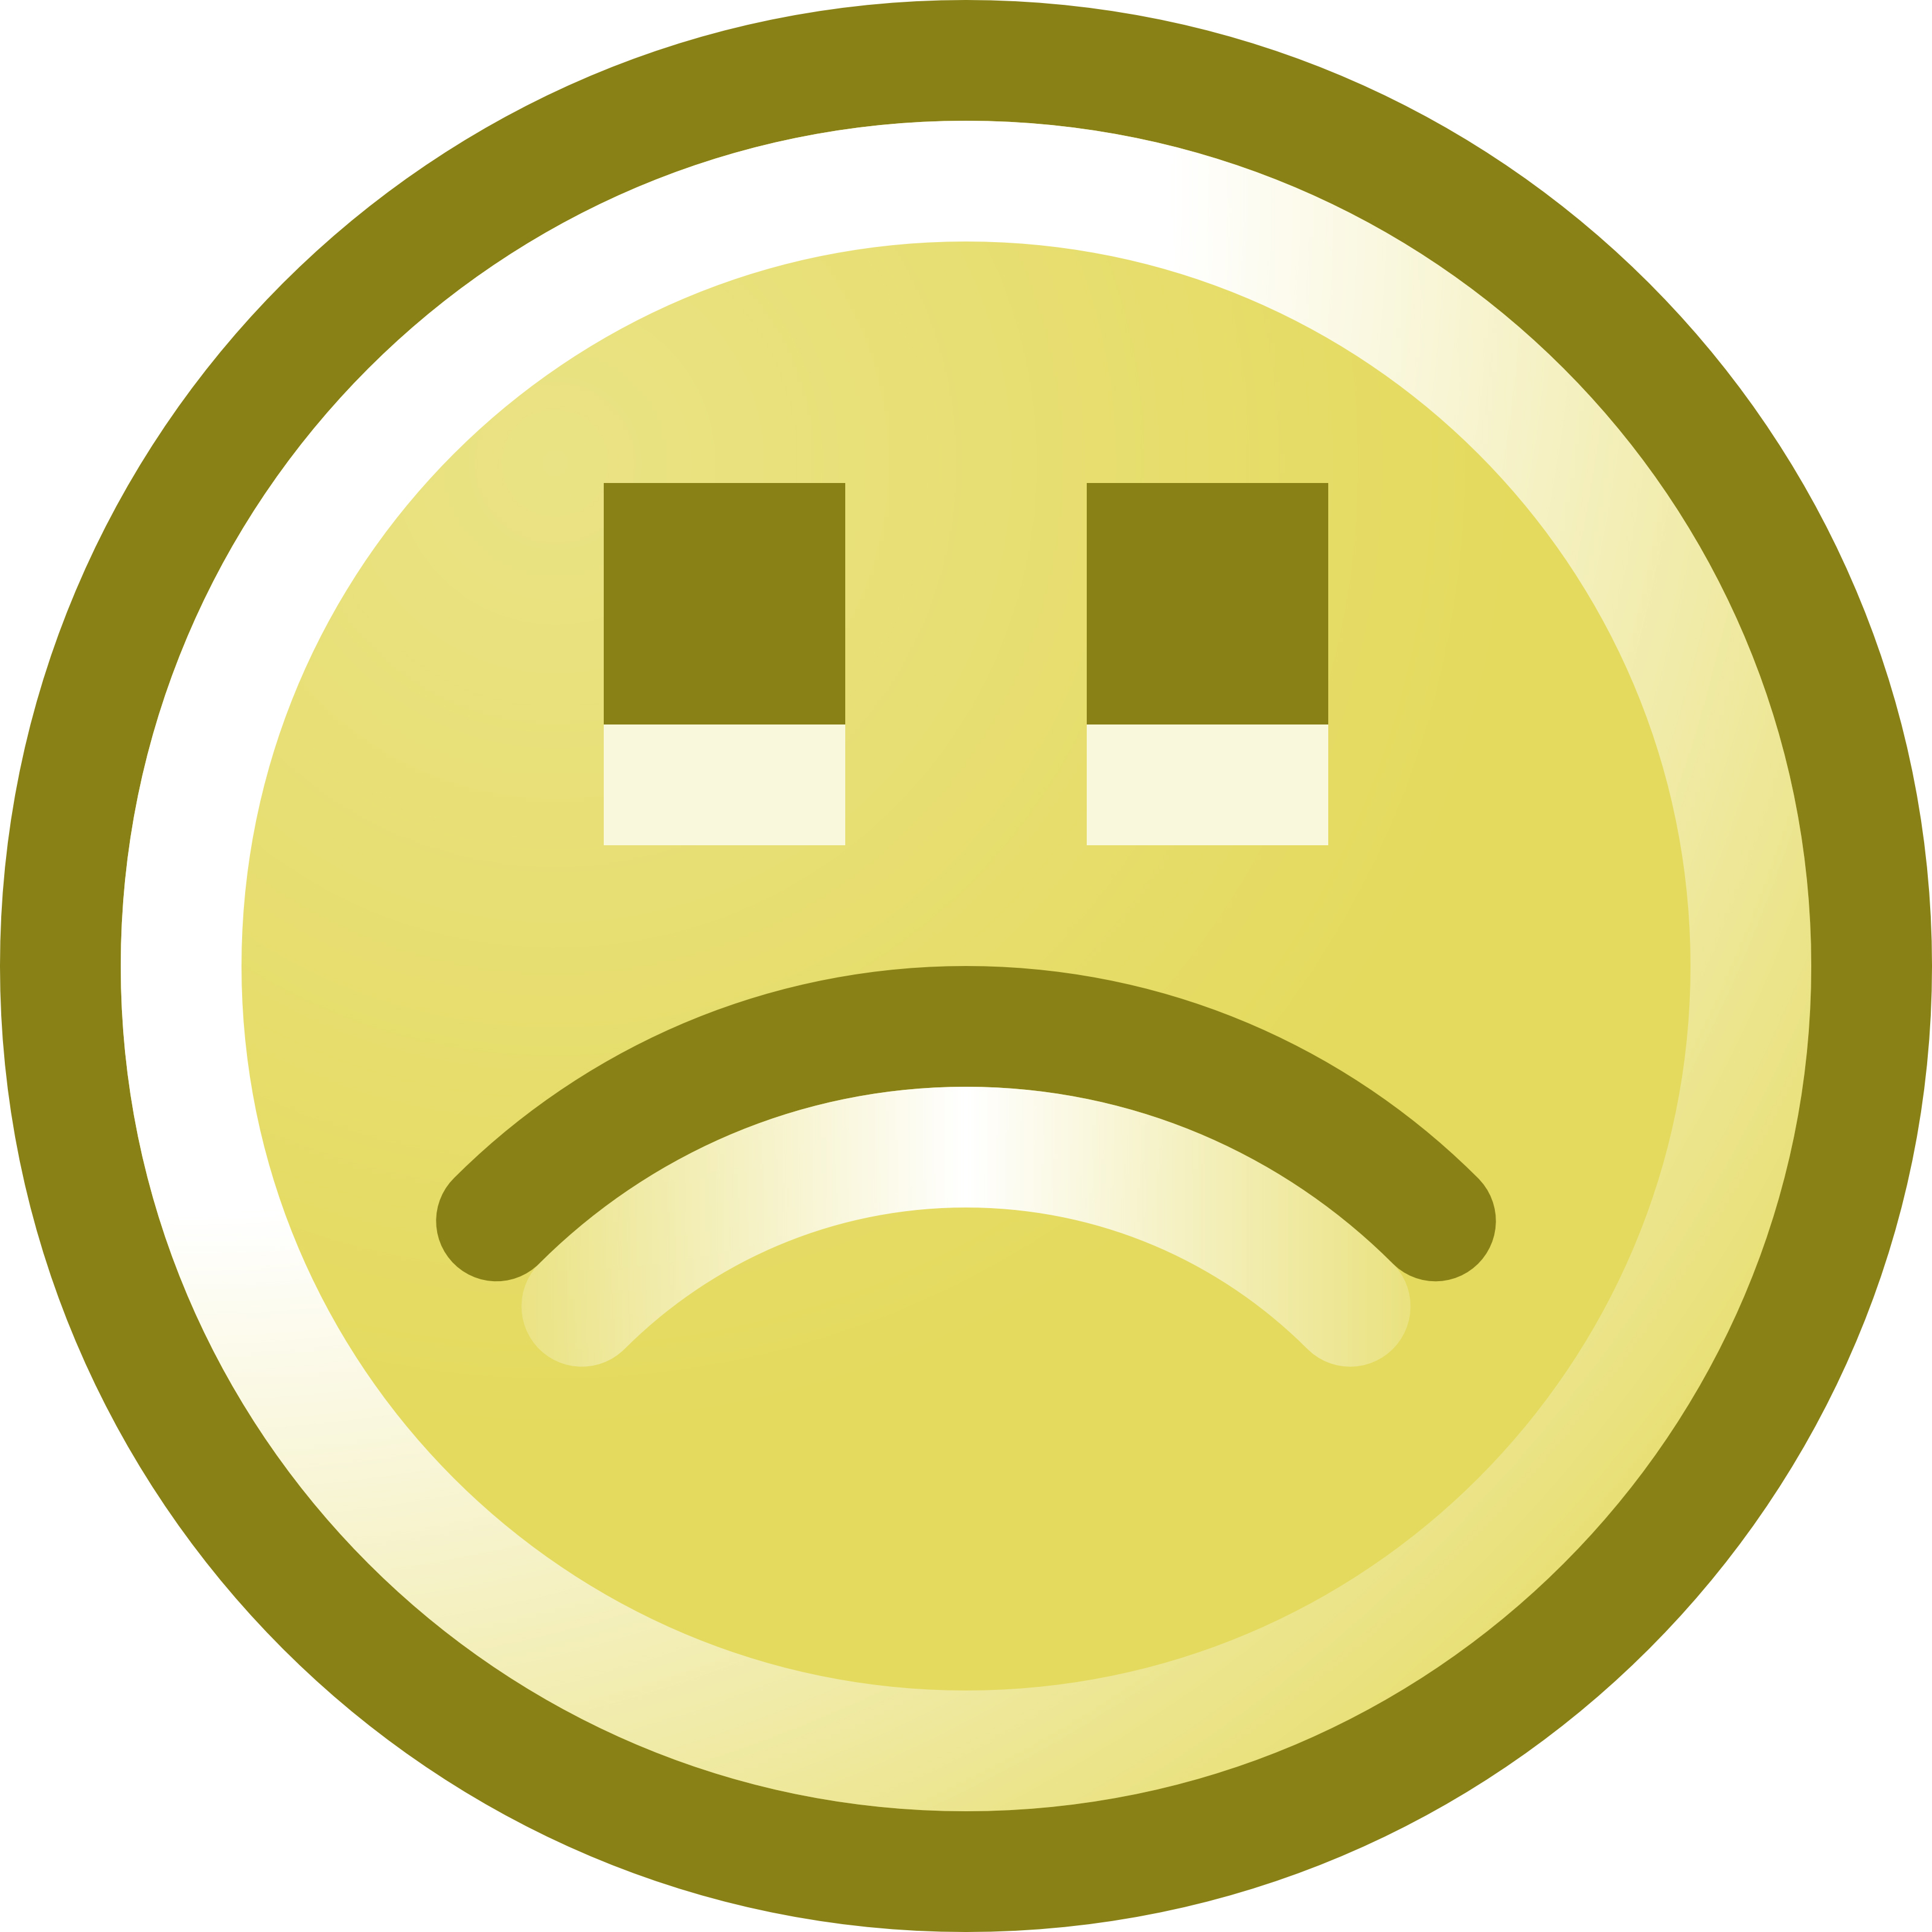 3200x3200 Frowning Smiley Face Clip Art Illustration